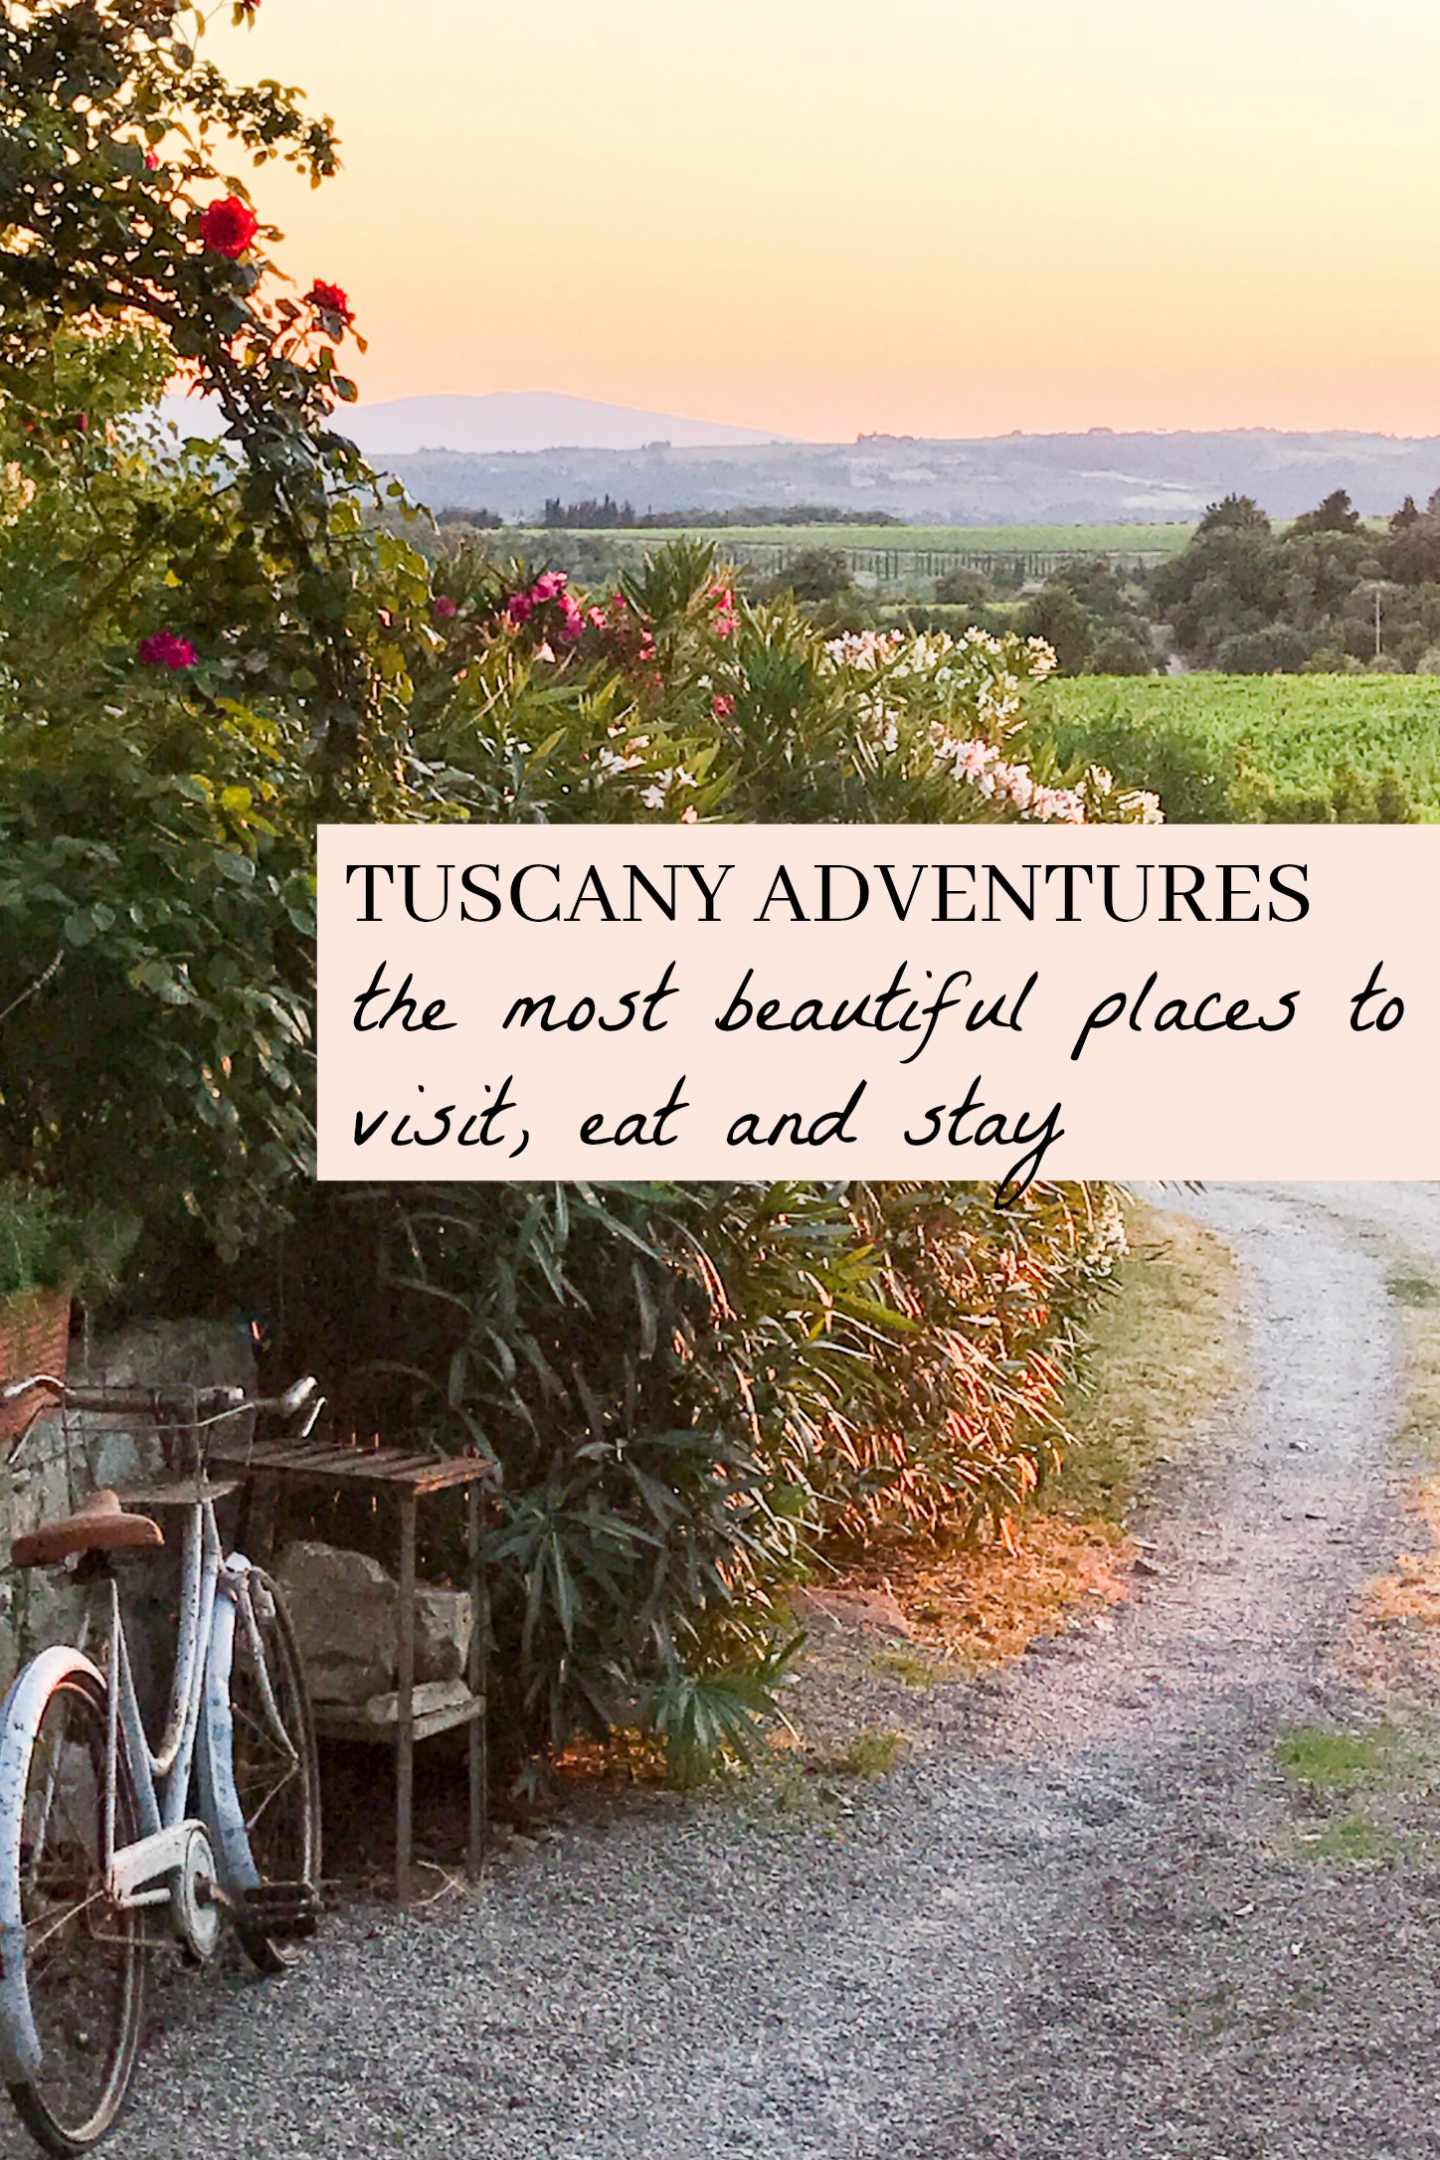 3 DAY TUSCAN ADVENTURE